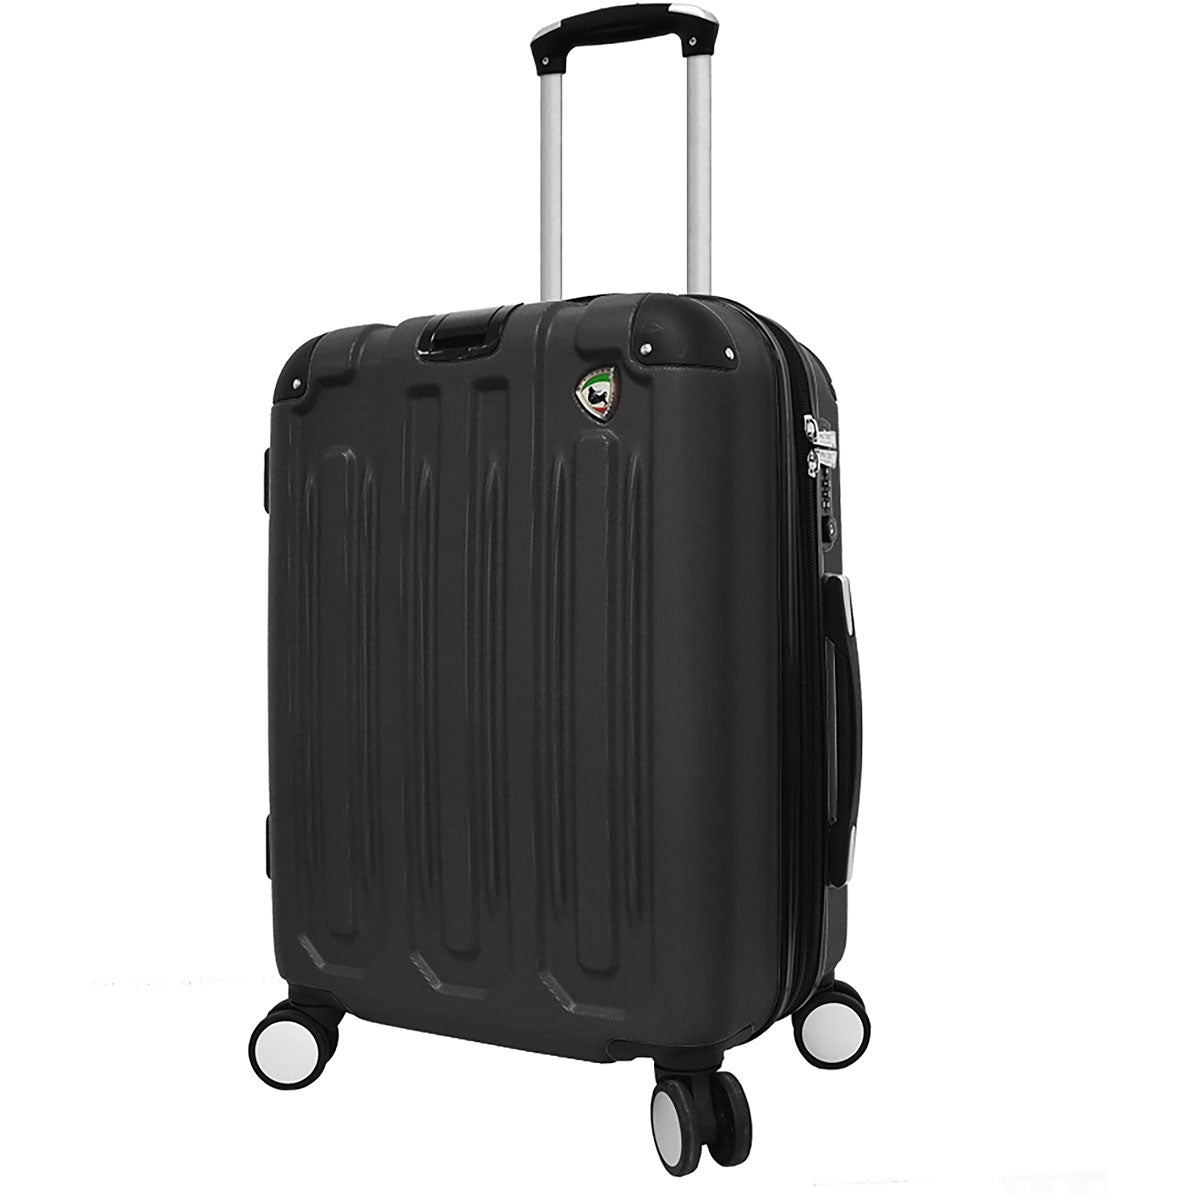 Mia Toro Metallo Composite Hardside Spinner Carry On